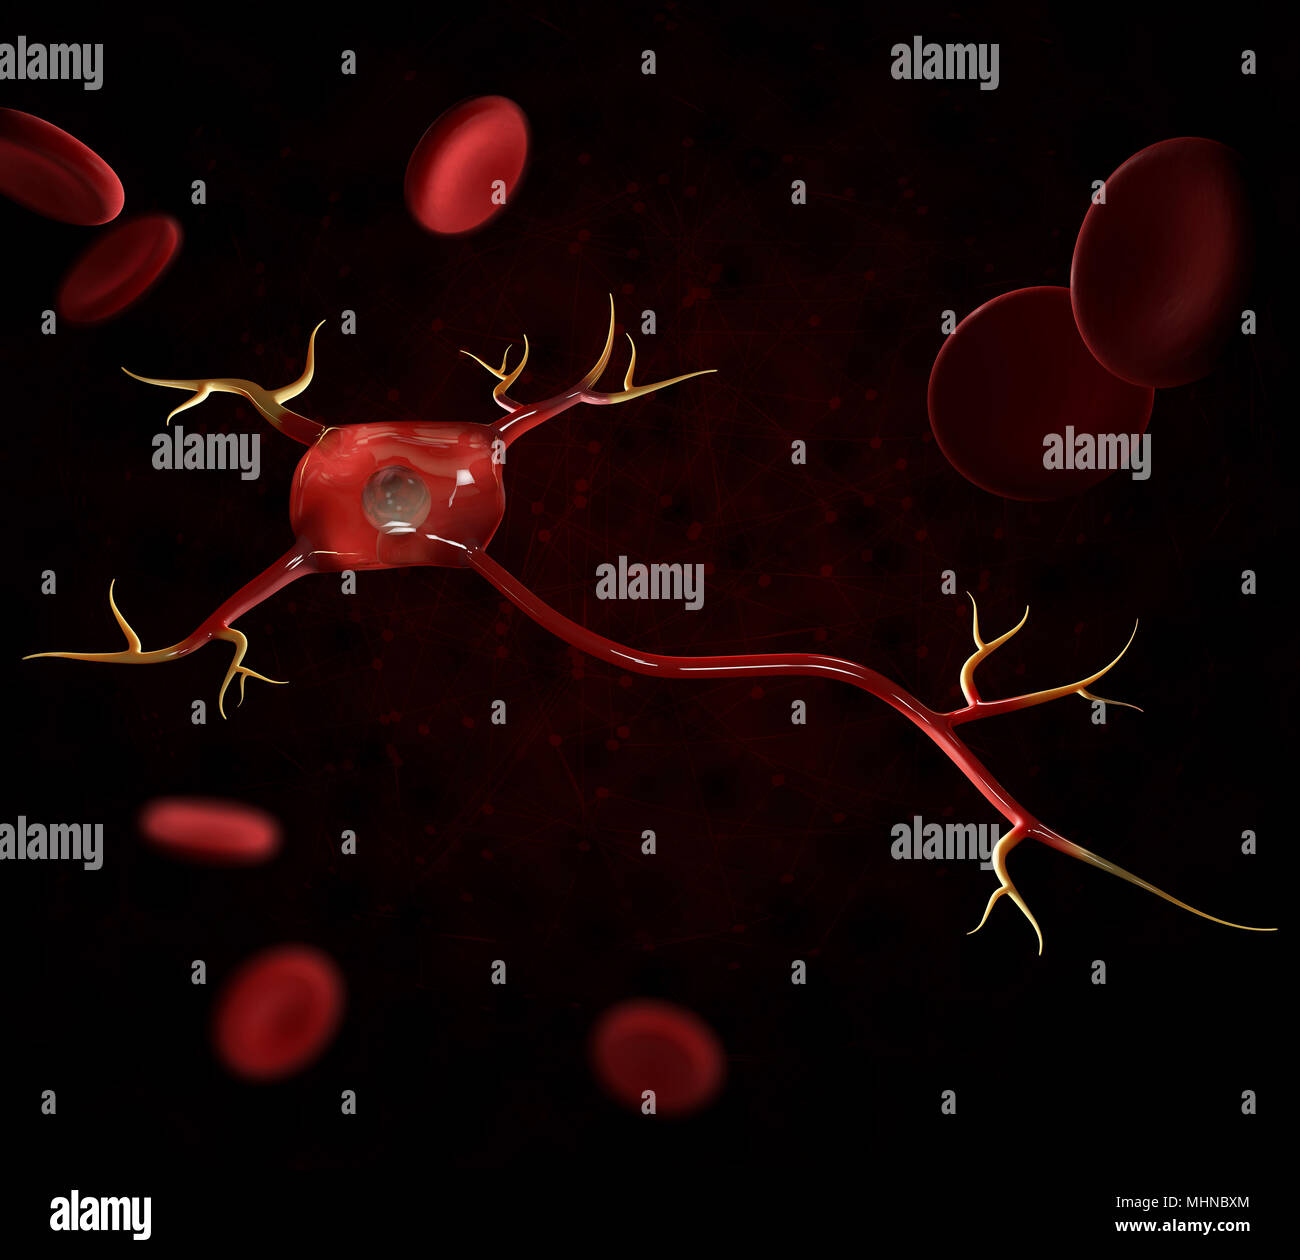 3d illustration of neuron cells with blood cells, high resolution 3D illustration - Stock Image